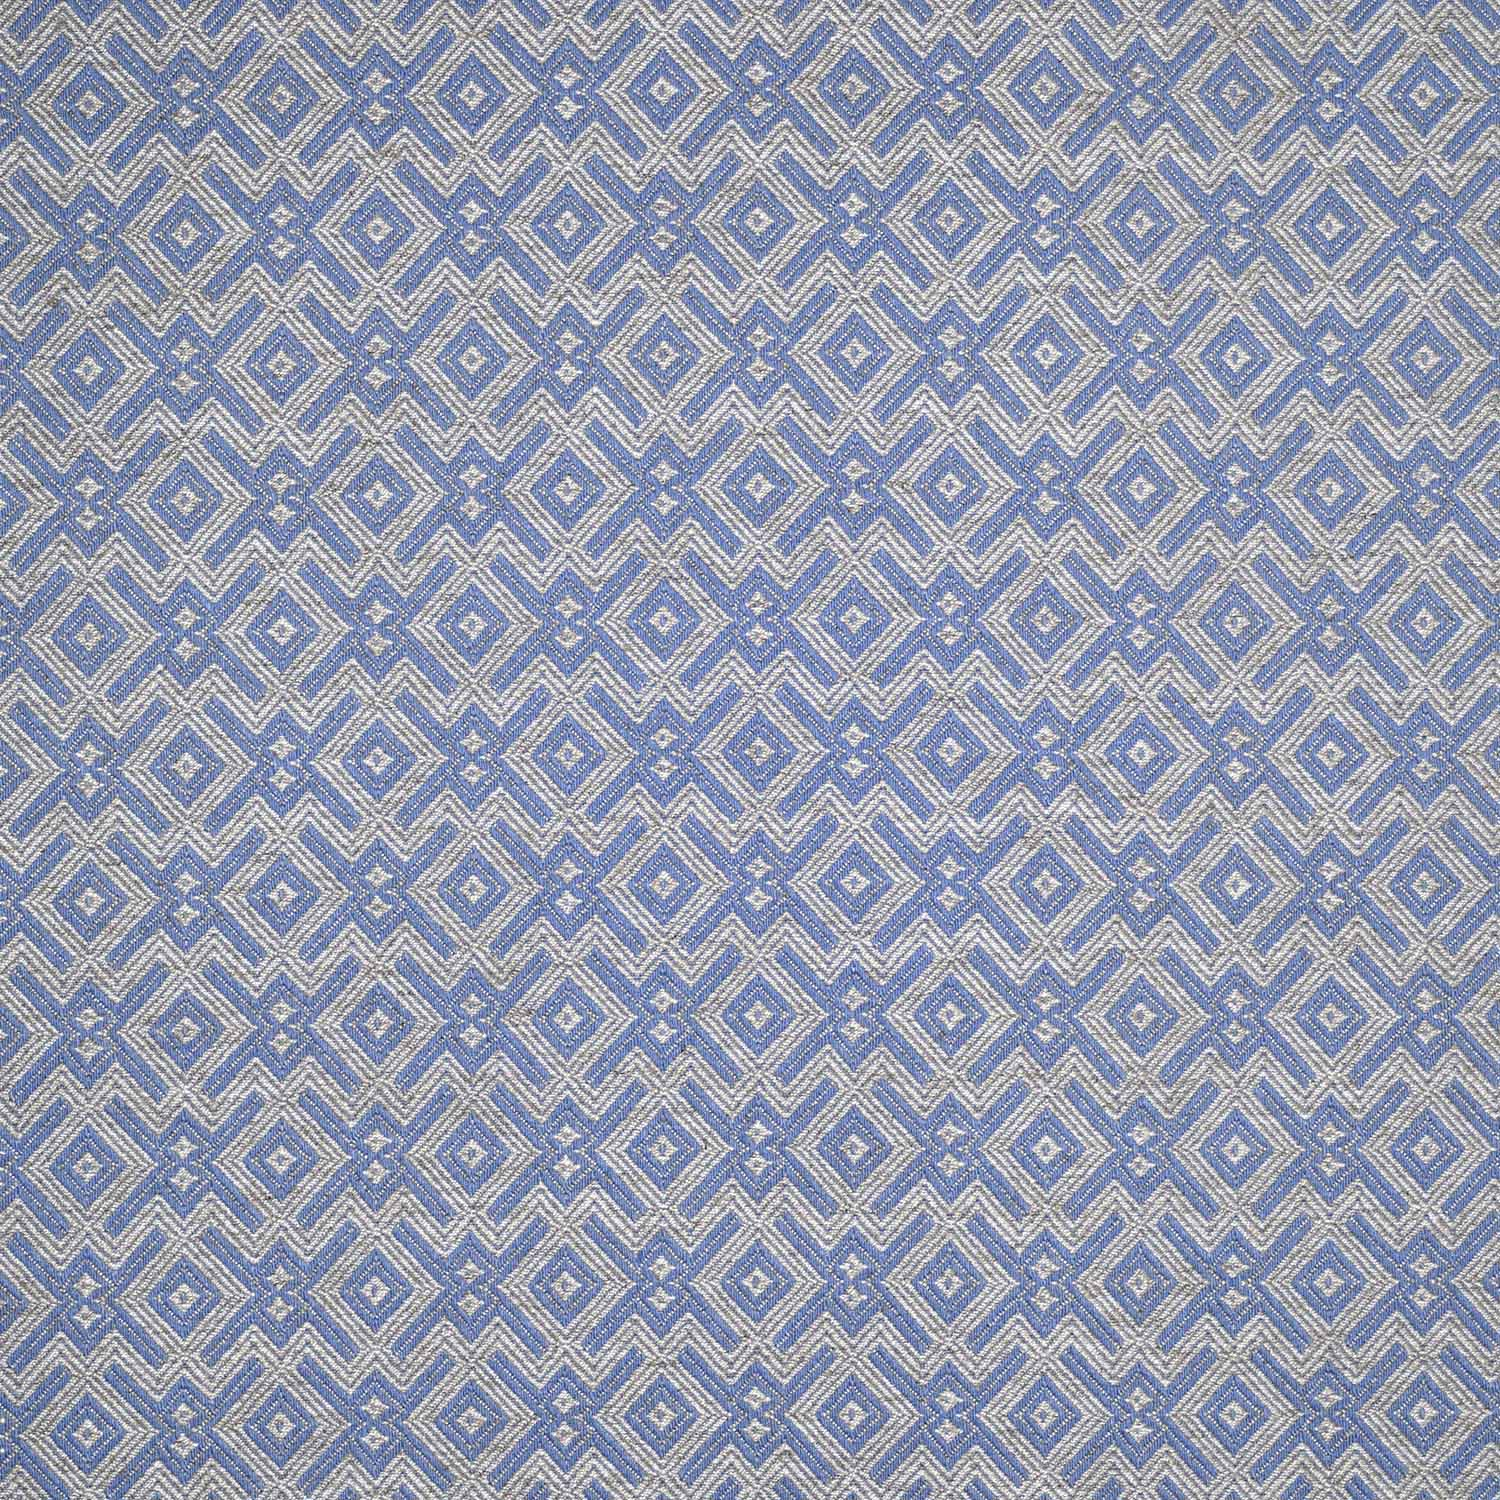 <p><strong>AMESBURY</strong>blue 1310-01<a href=/the-winthorp-collection/amersbury-blue-1310-01>More →</a></p>